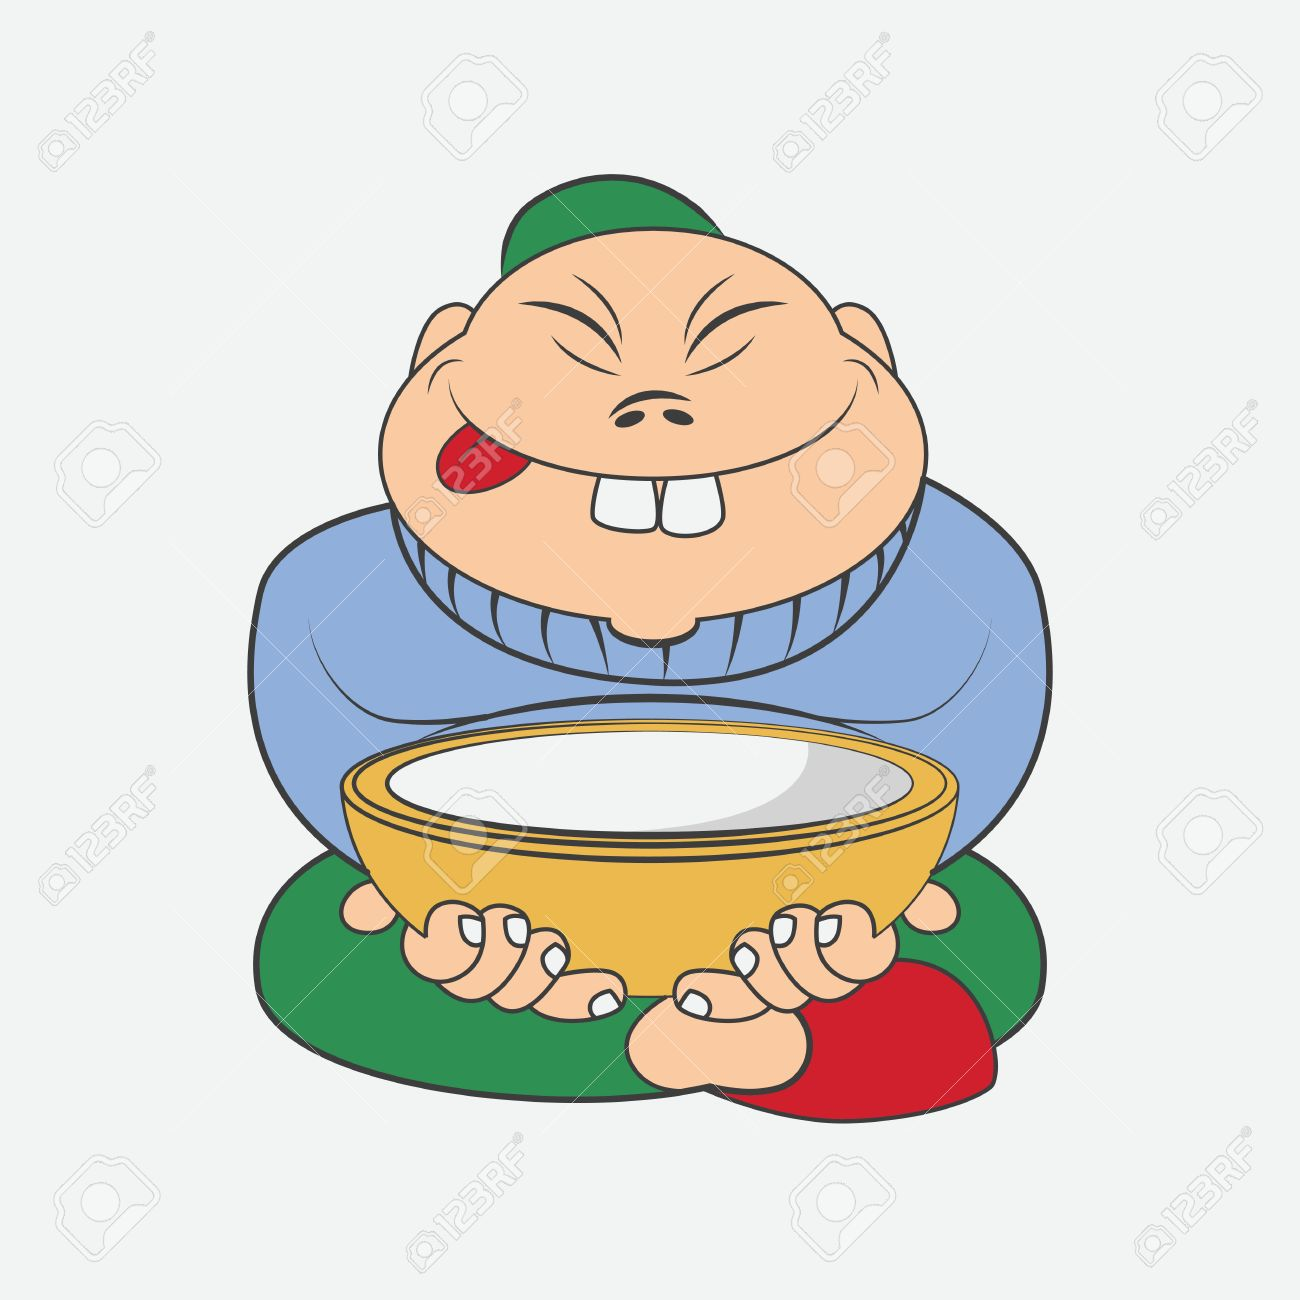 cartoon chinese man sitting with a plate royalty free cliparts rh 123rf com cartoon chinese lantern cartoon chinese old man